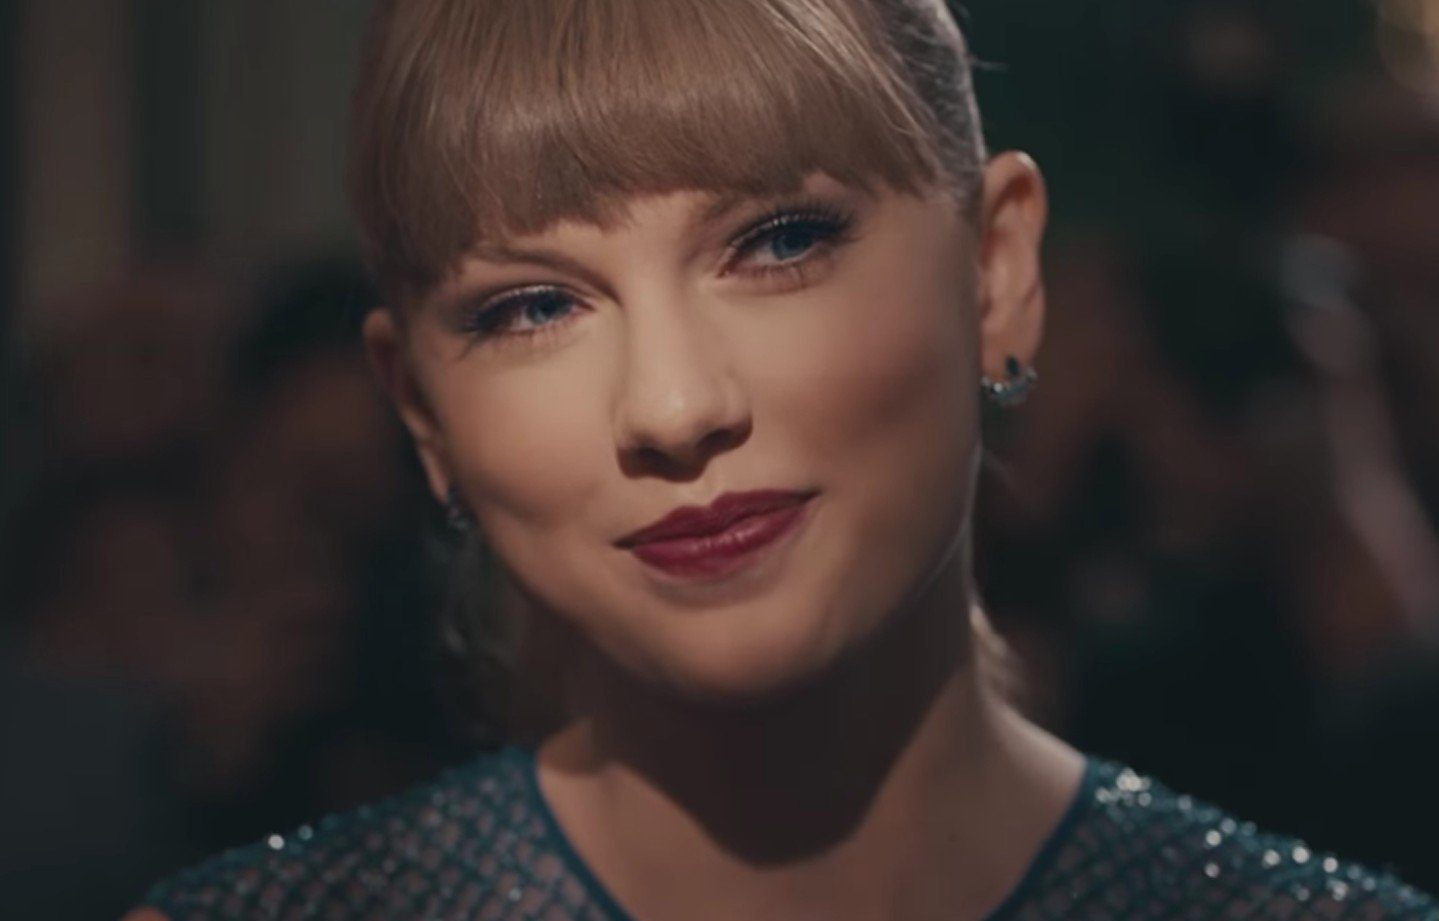 Taylor swifts delicate music video garners mixed reviews taylor swift stopboris Gallery